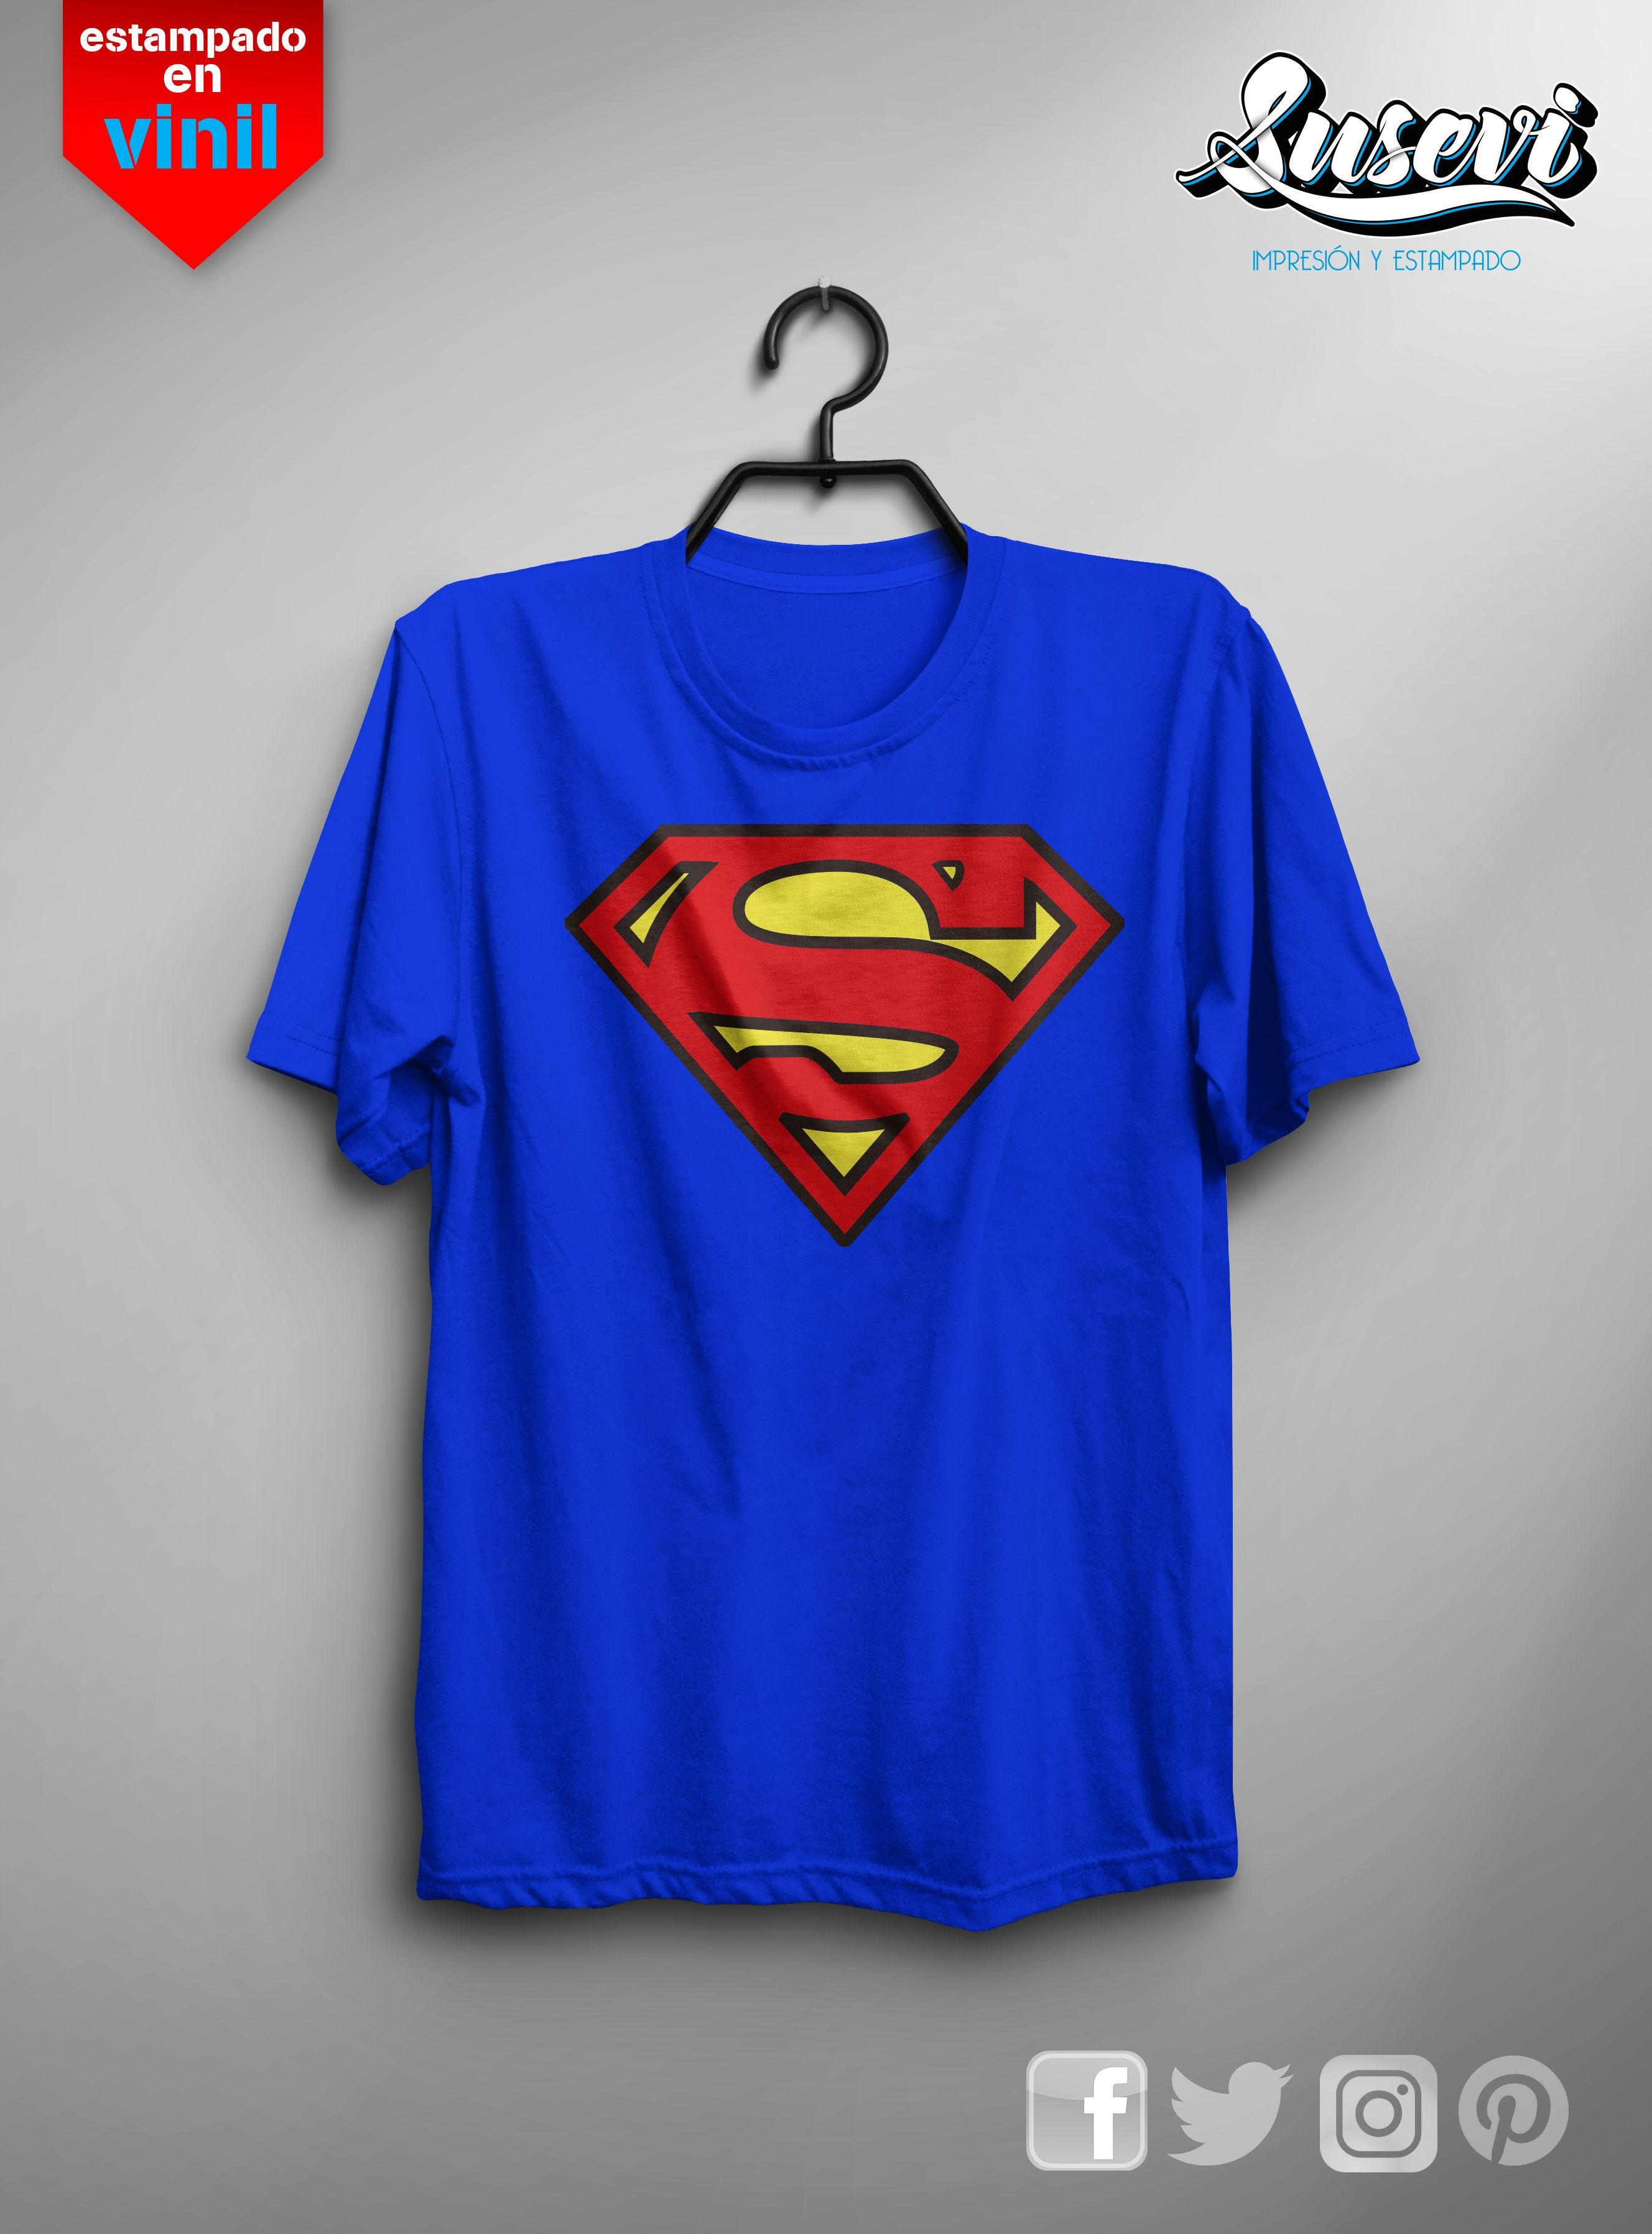 Playera personalizada-superman-hombre-estampados  comics  playeras  superman 2b743c7e506ce